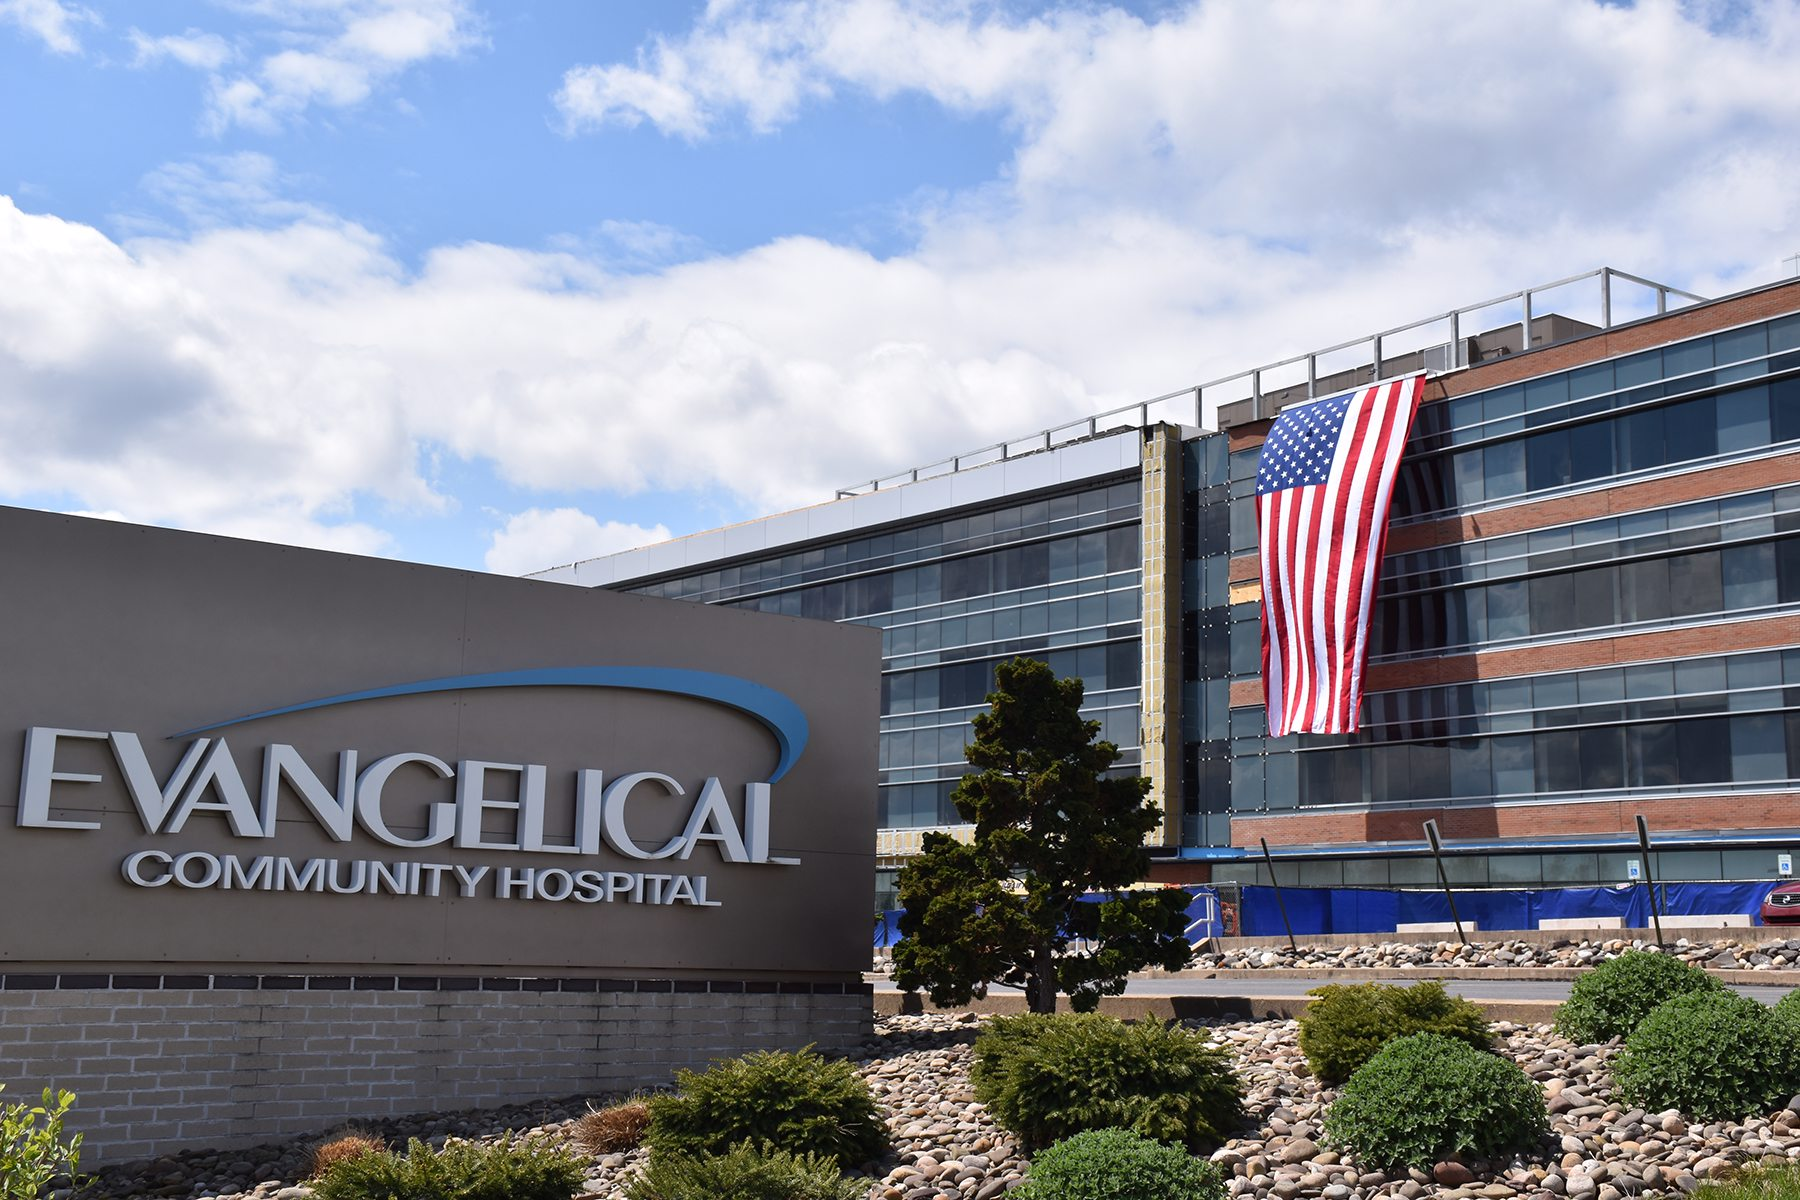 Evangelical Community Hospital Displays American Flag on the PRIME Project